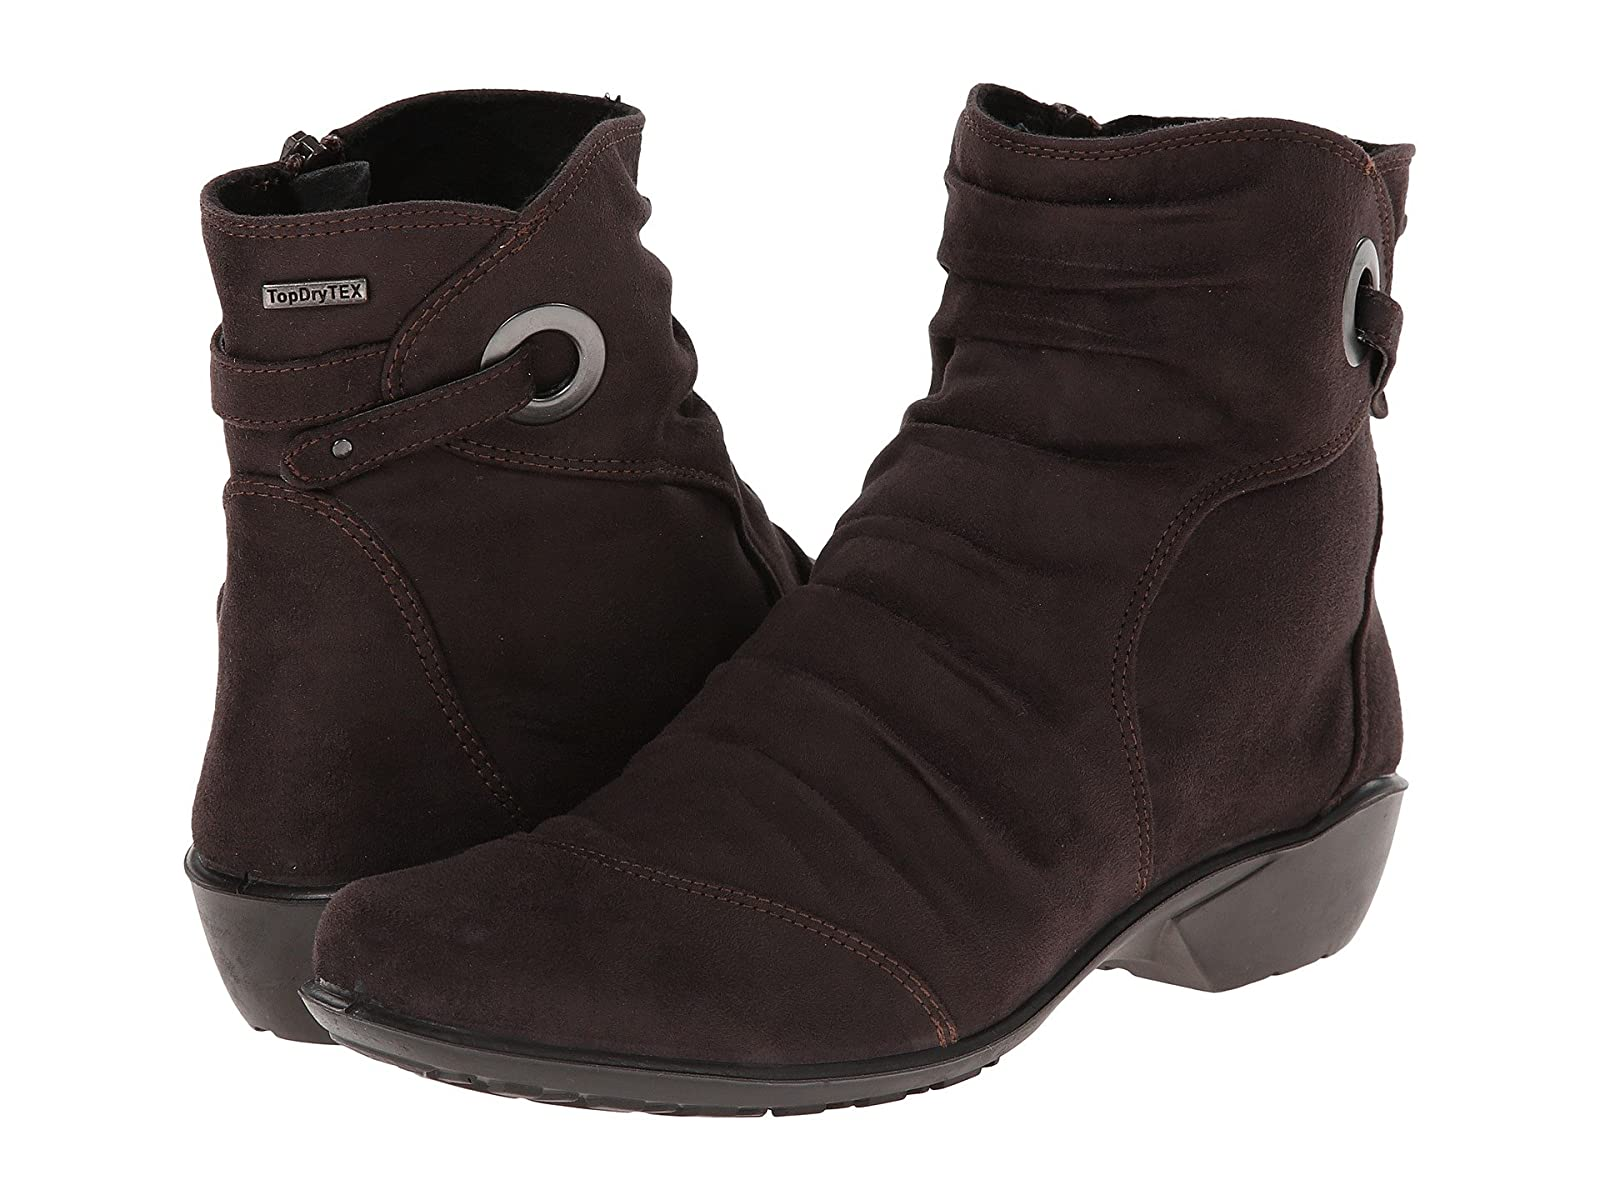 Romika Citytex 121Cheap and distinctive eye-catching shoes